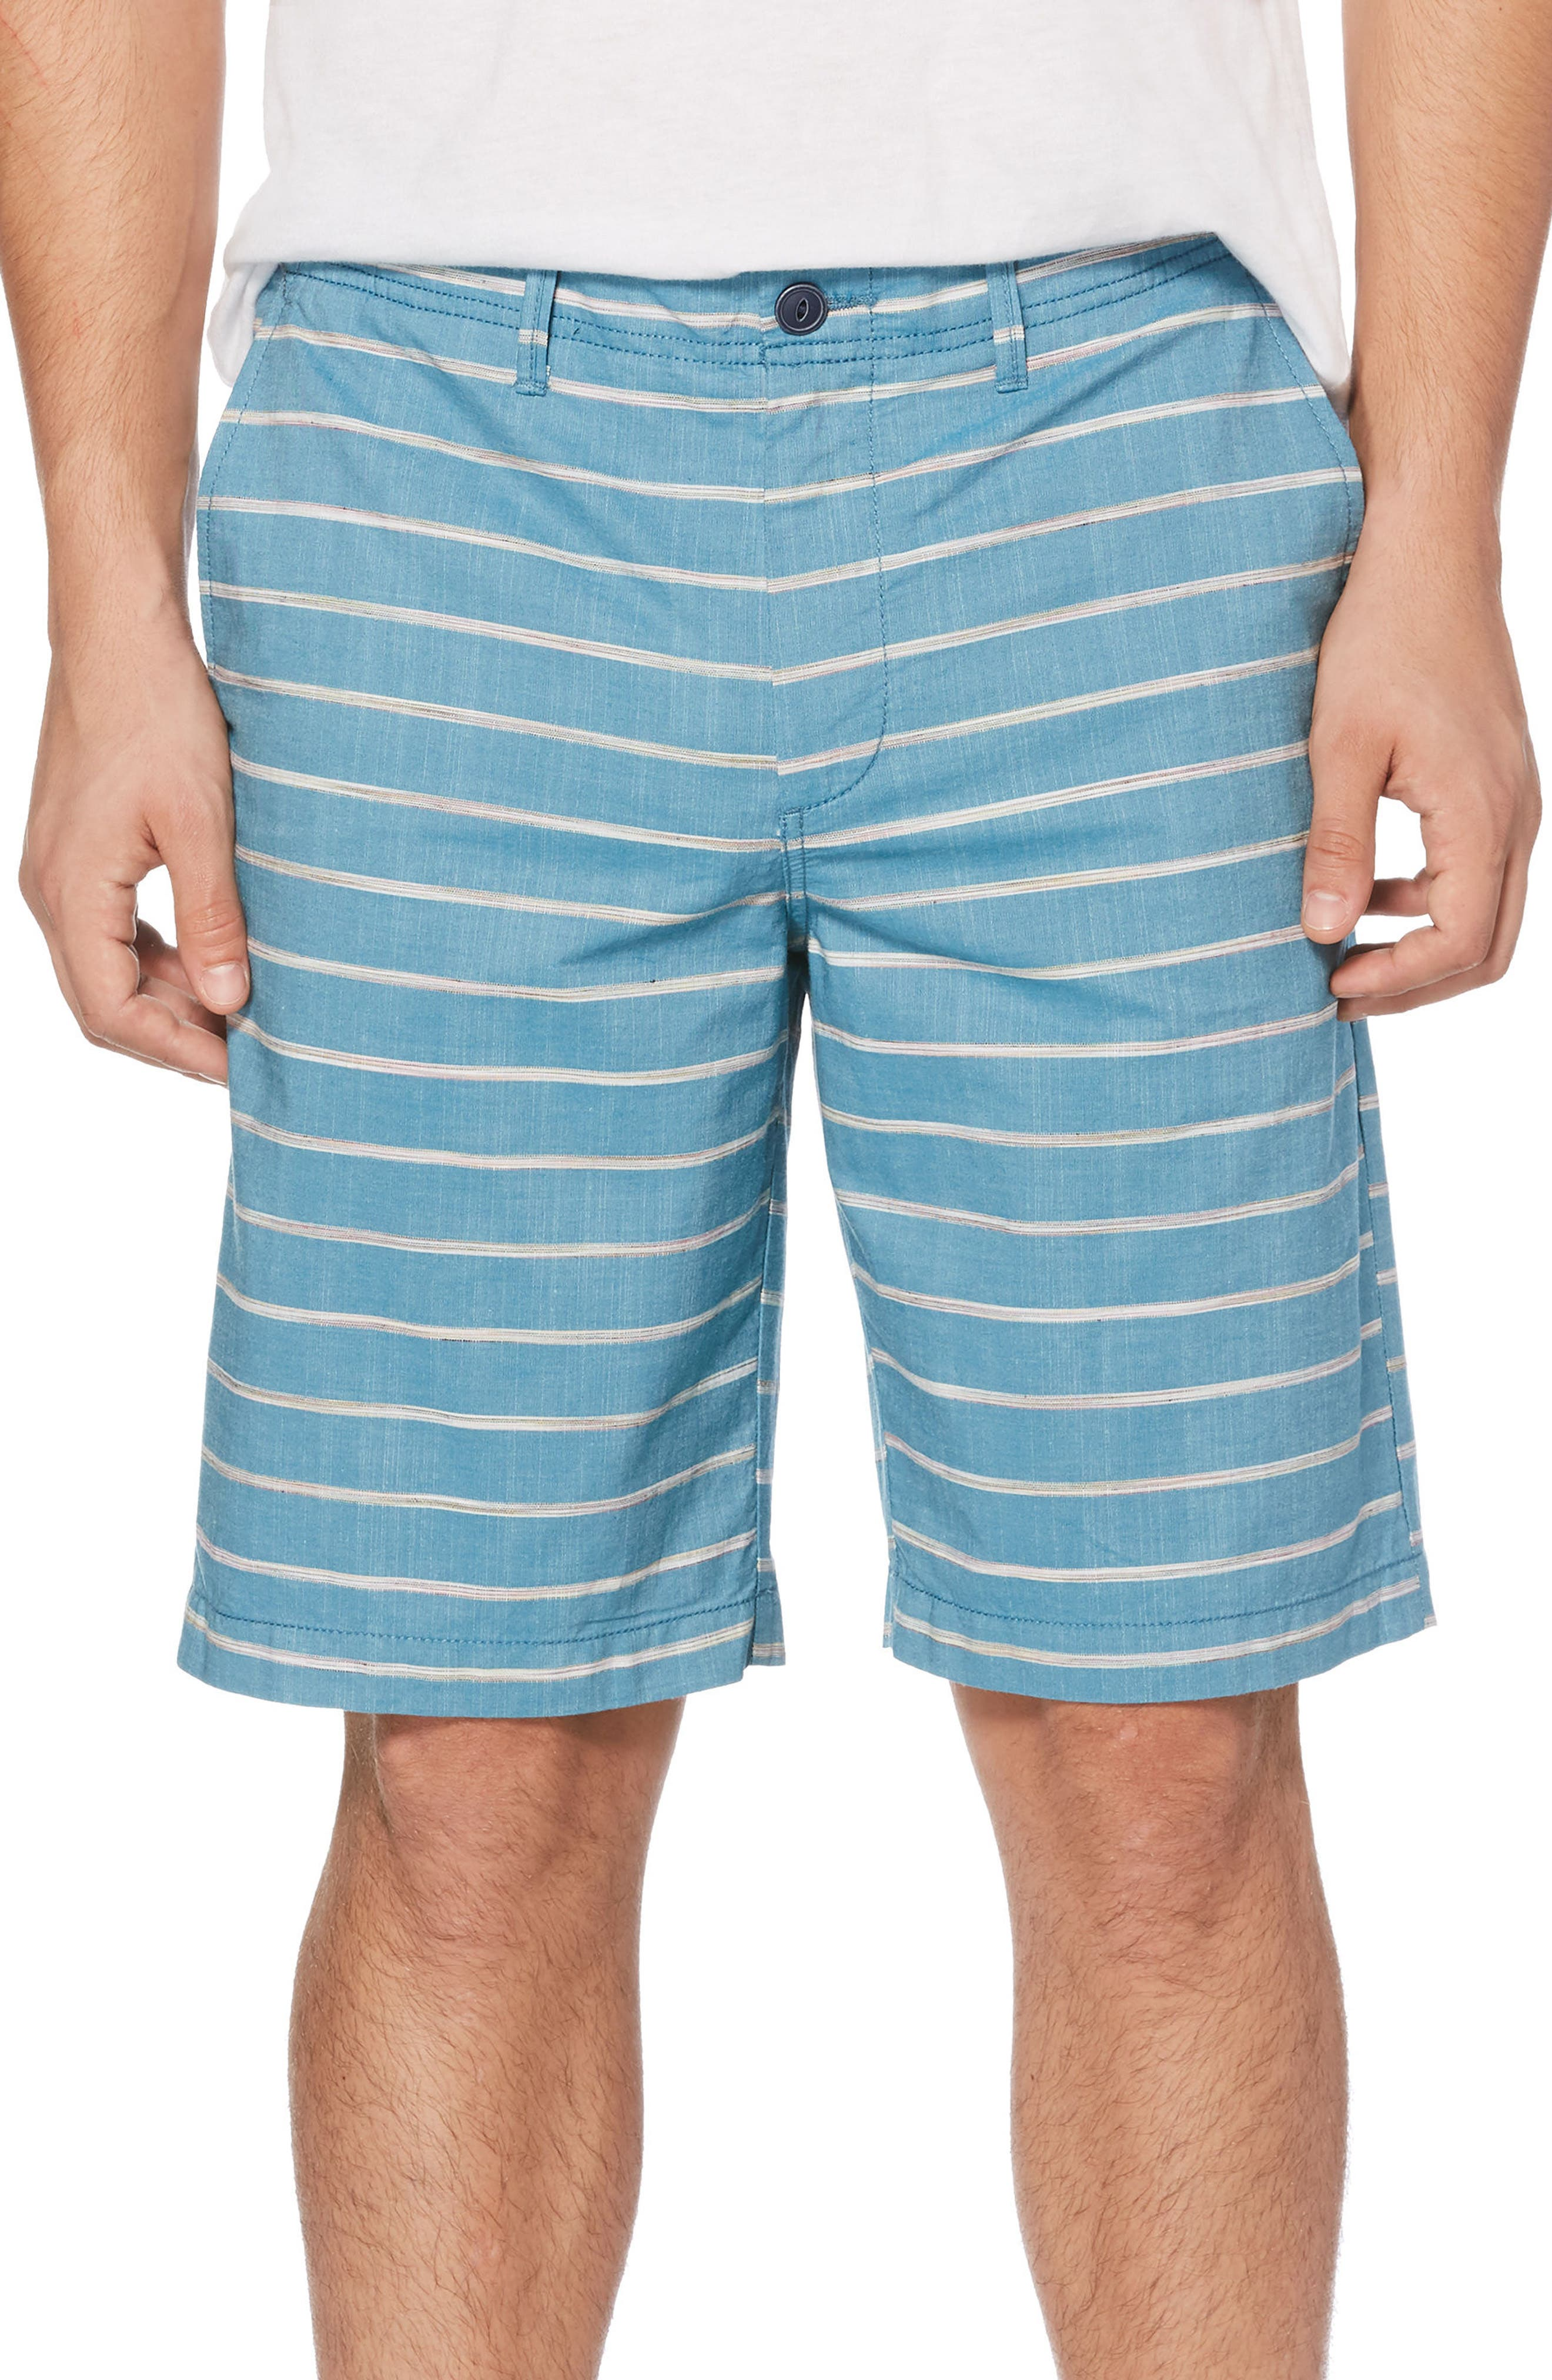 P55 Stripe Shorts,                         Main,                         color, 413